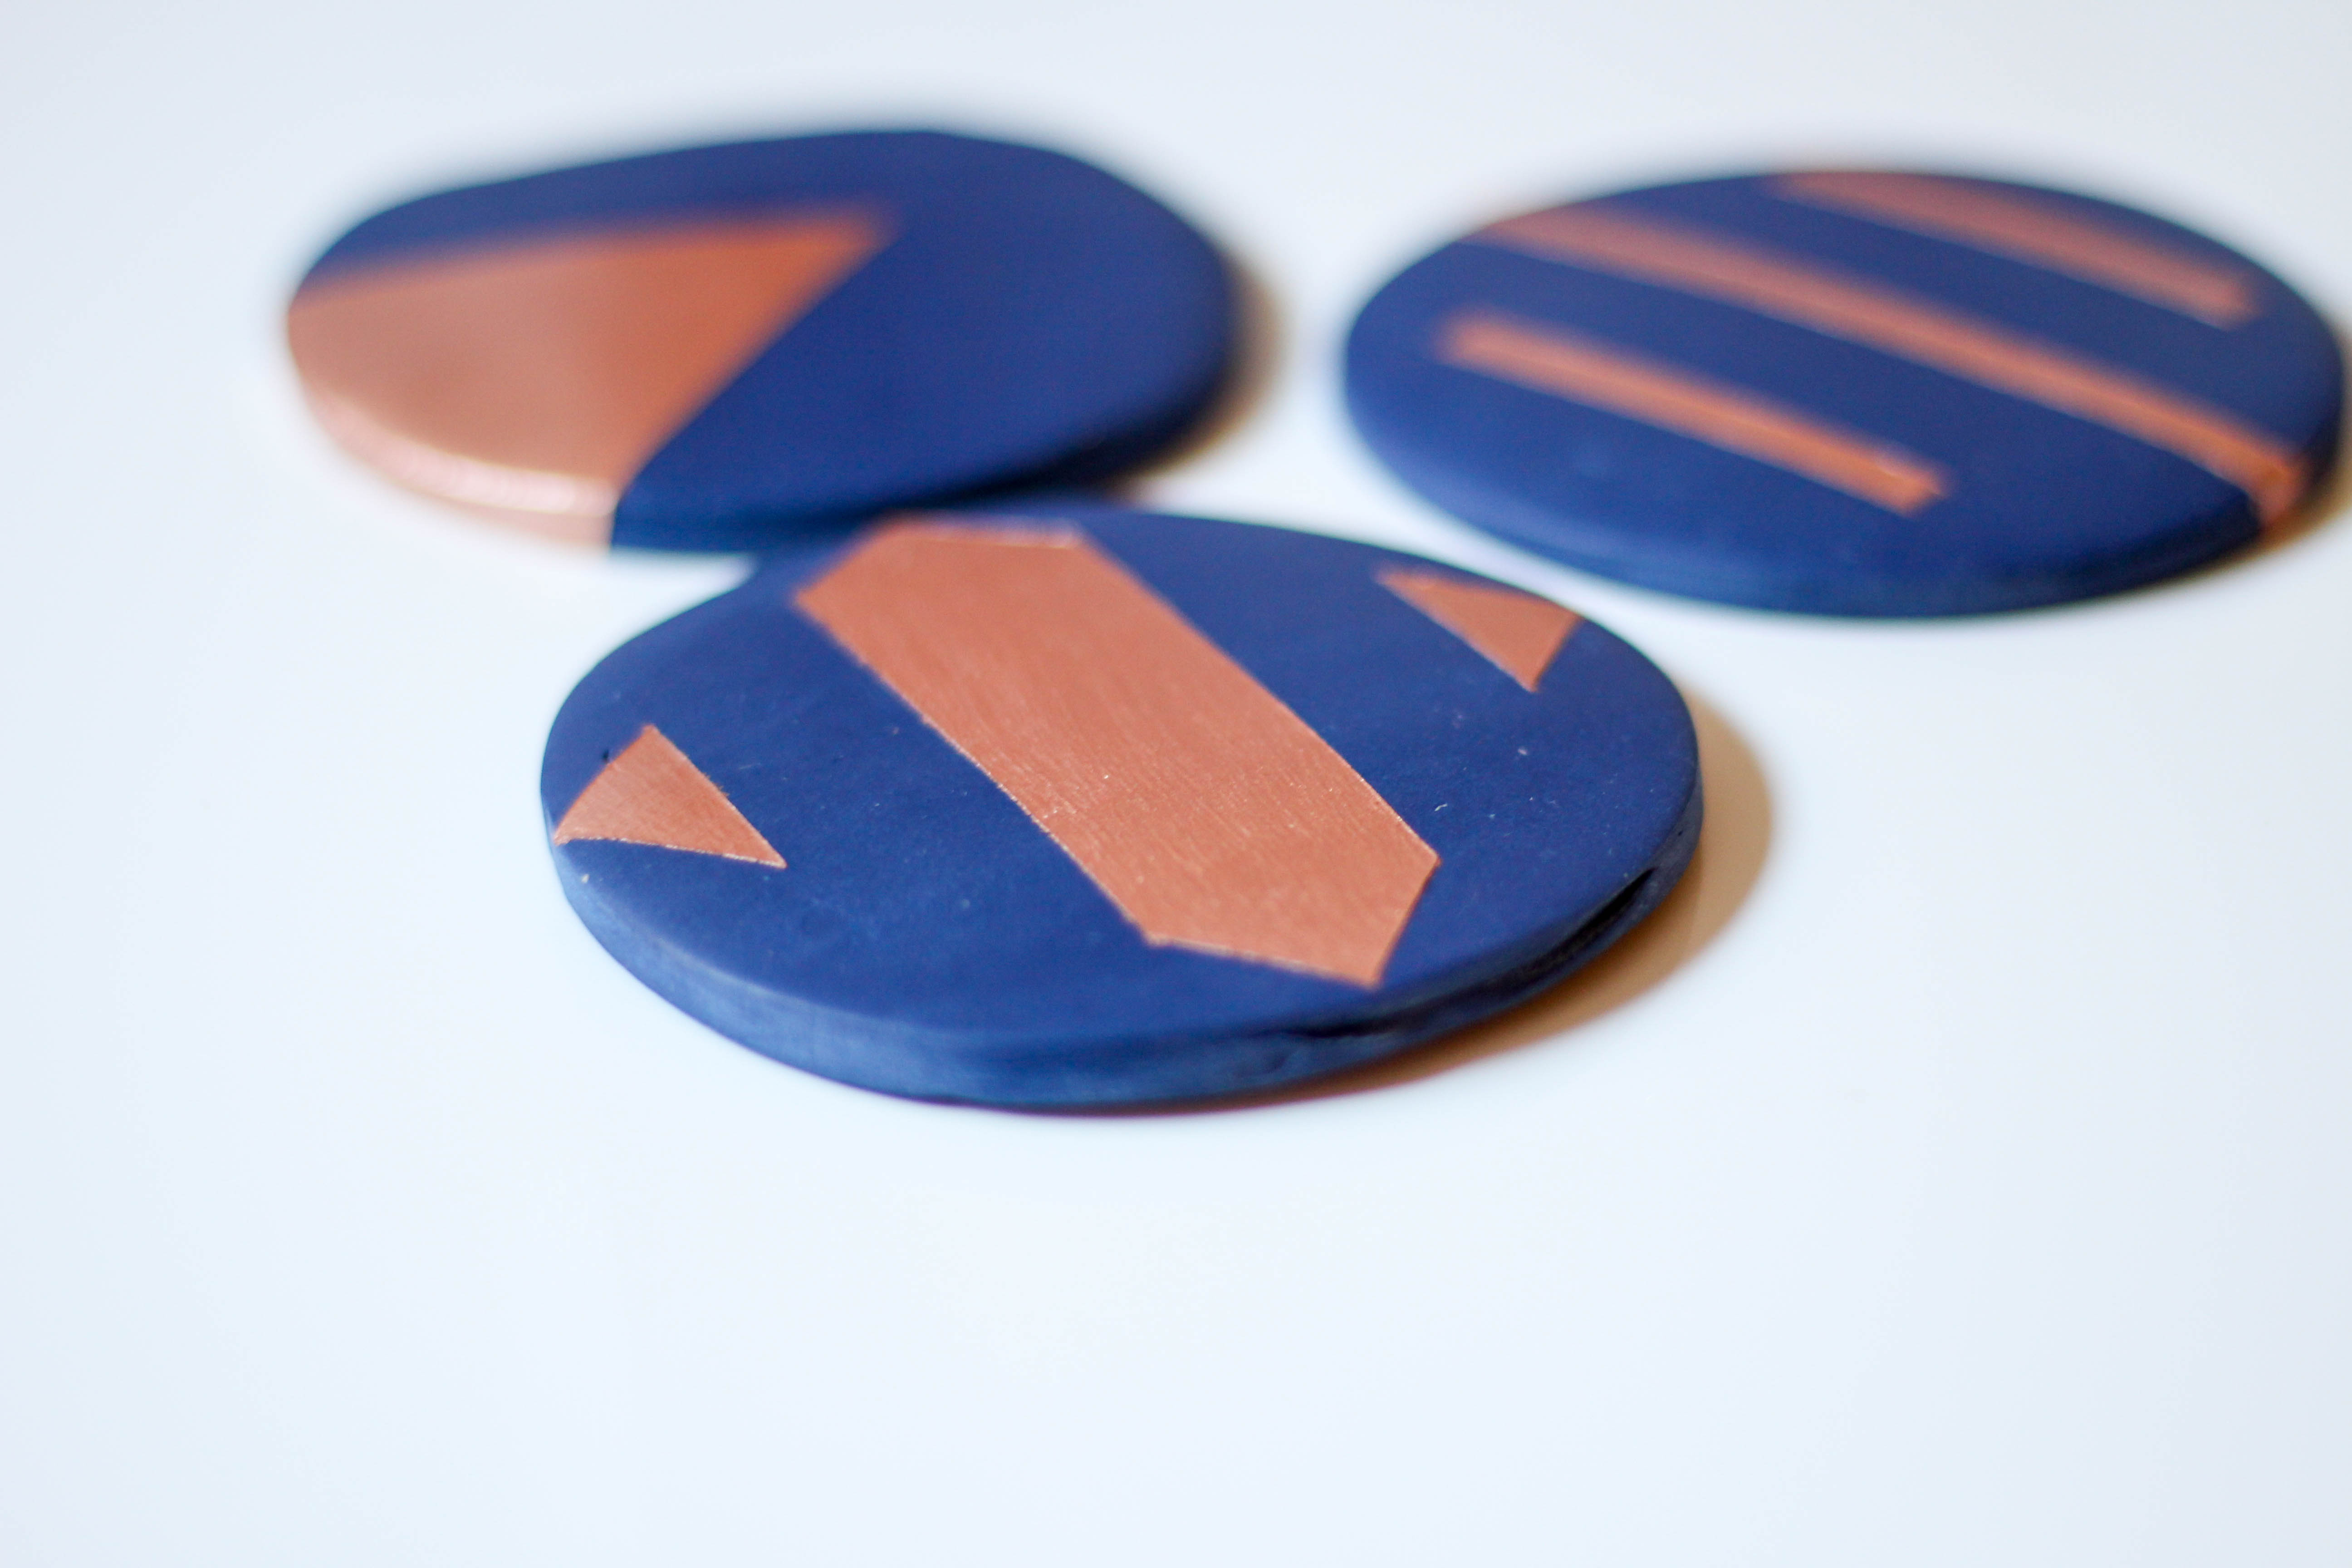 DIY Clay Coasters by Twinspiration at http://twinspiration.co/diy-clay-coasters/